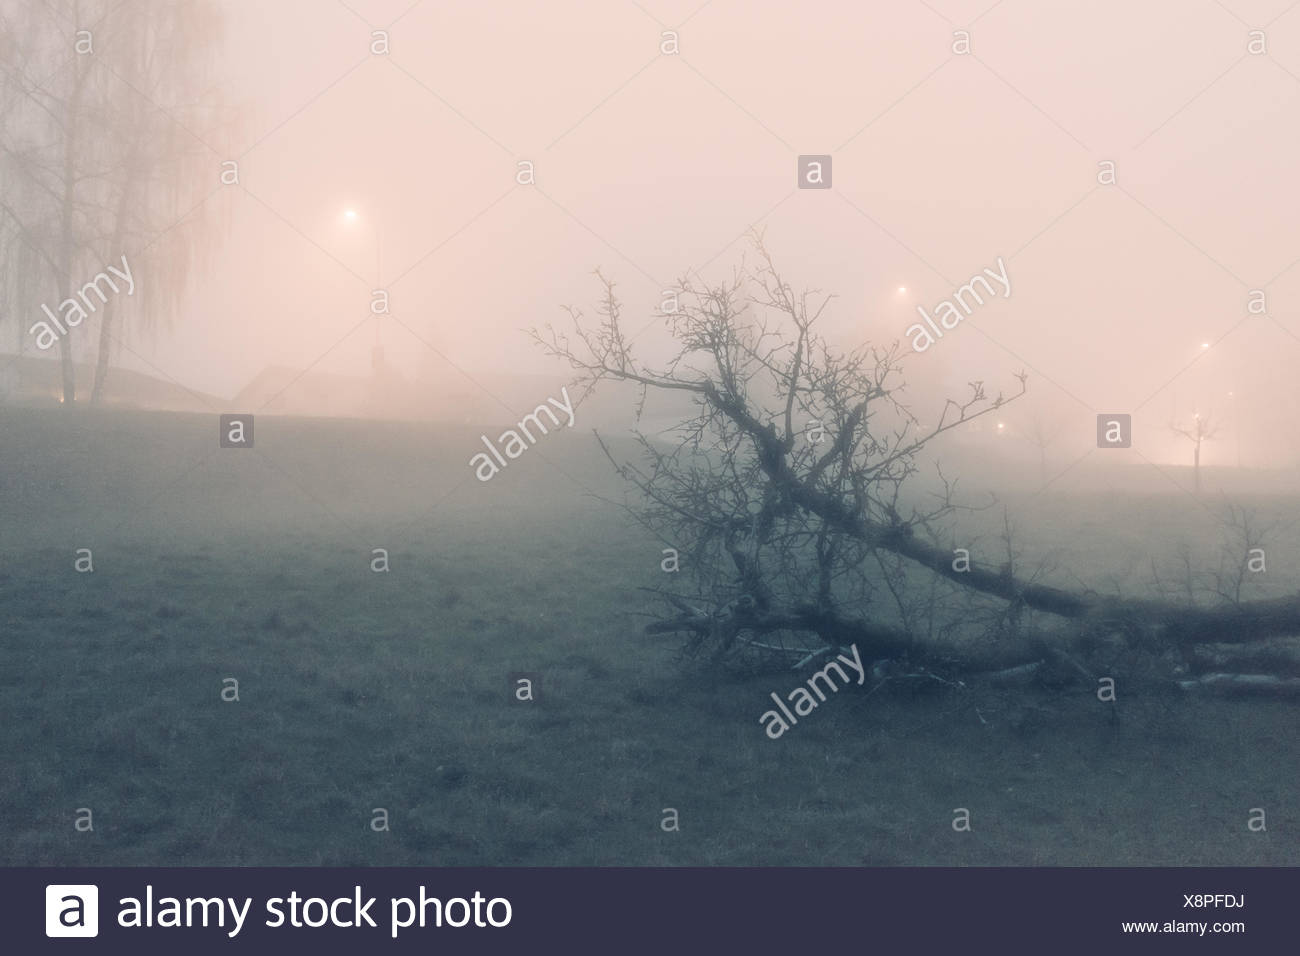 Fallen Tree On Grassy Field During Foggy Weather - Stock Image